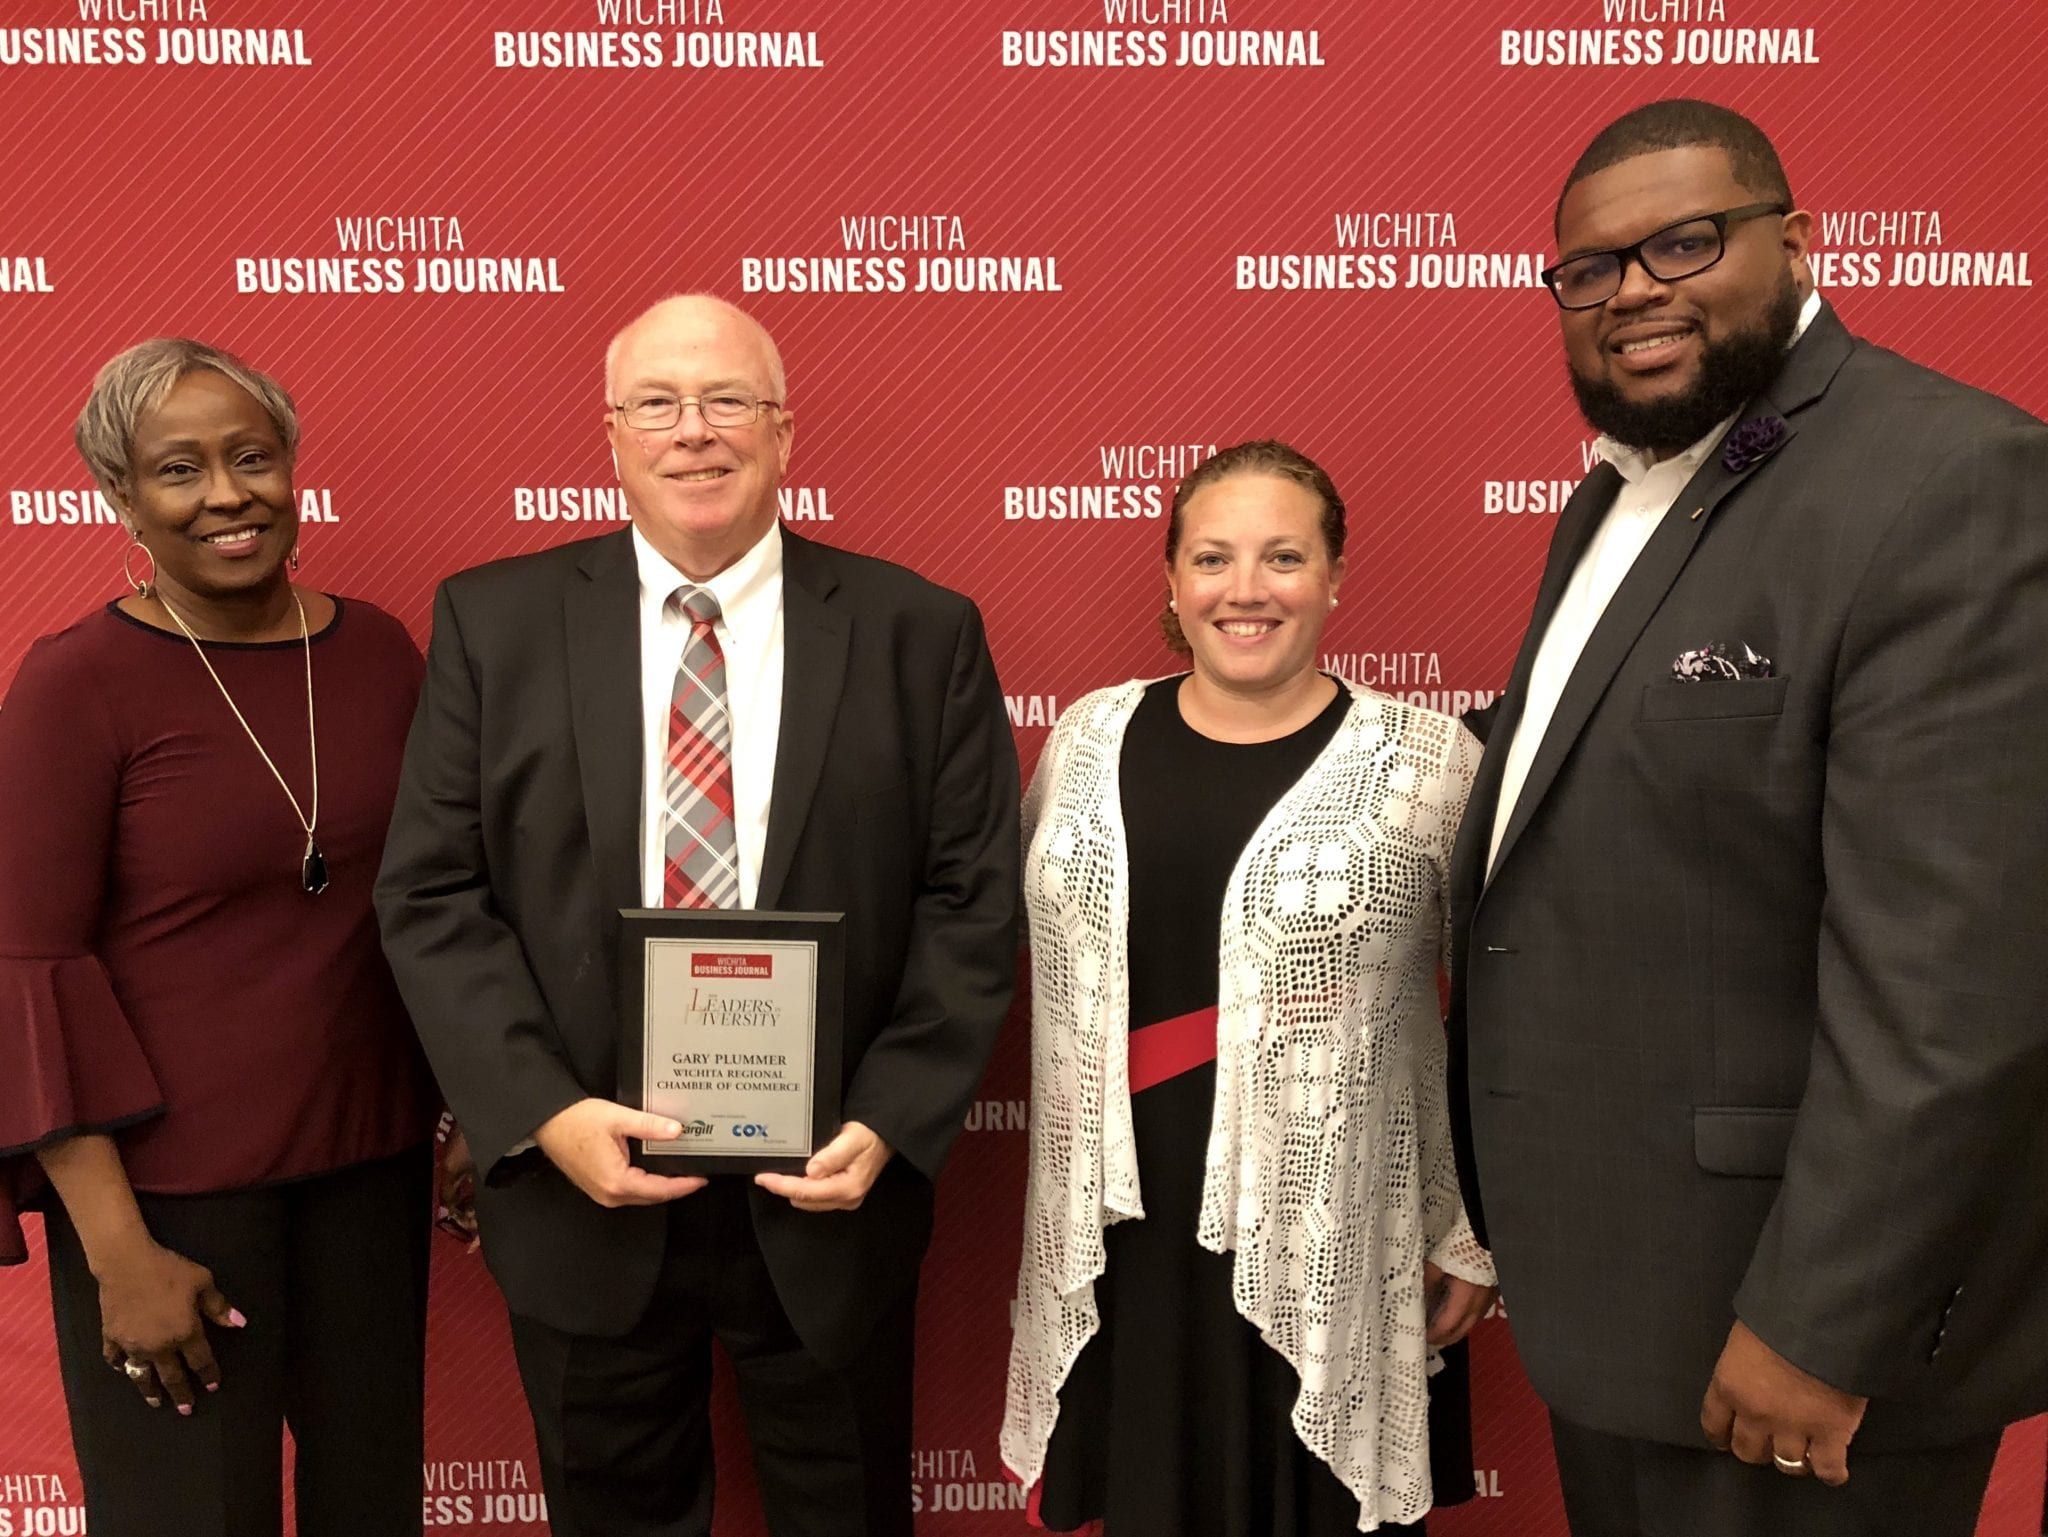 Chamber receives award for Diversity & Inclusion work